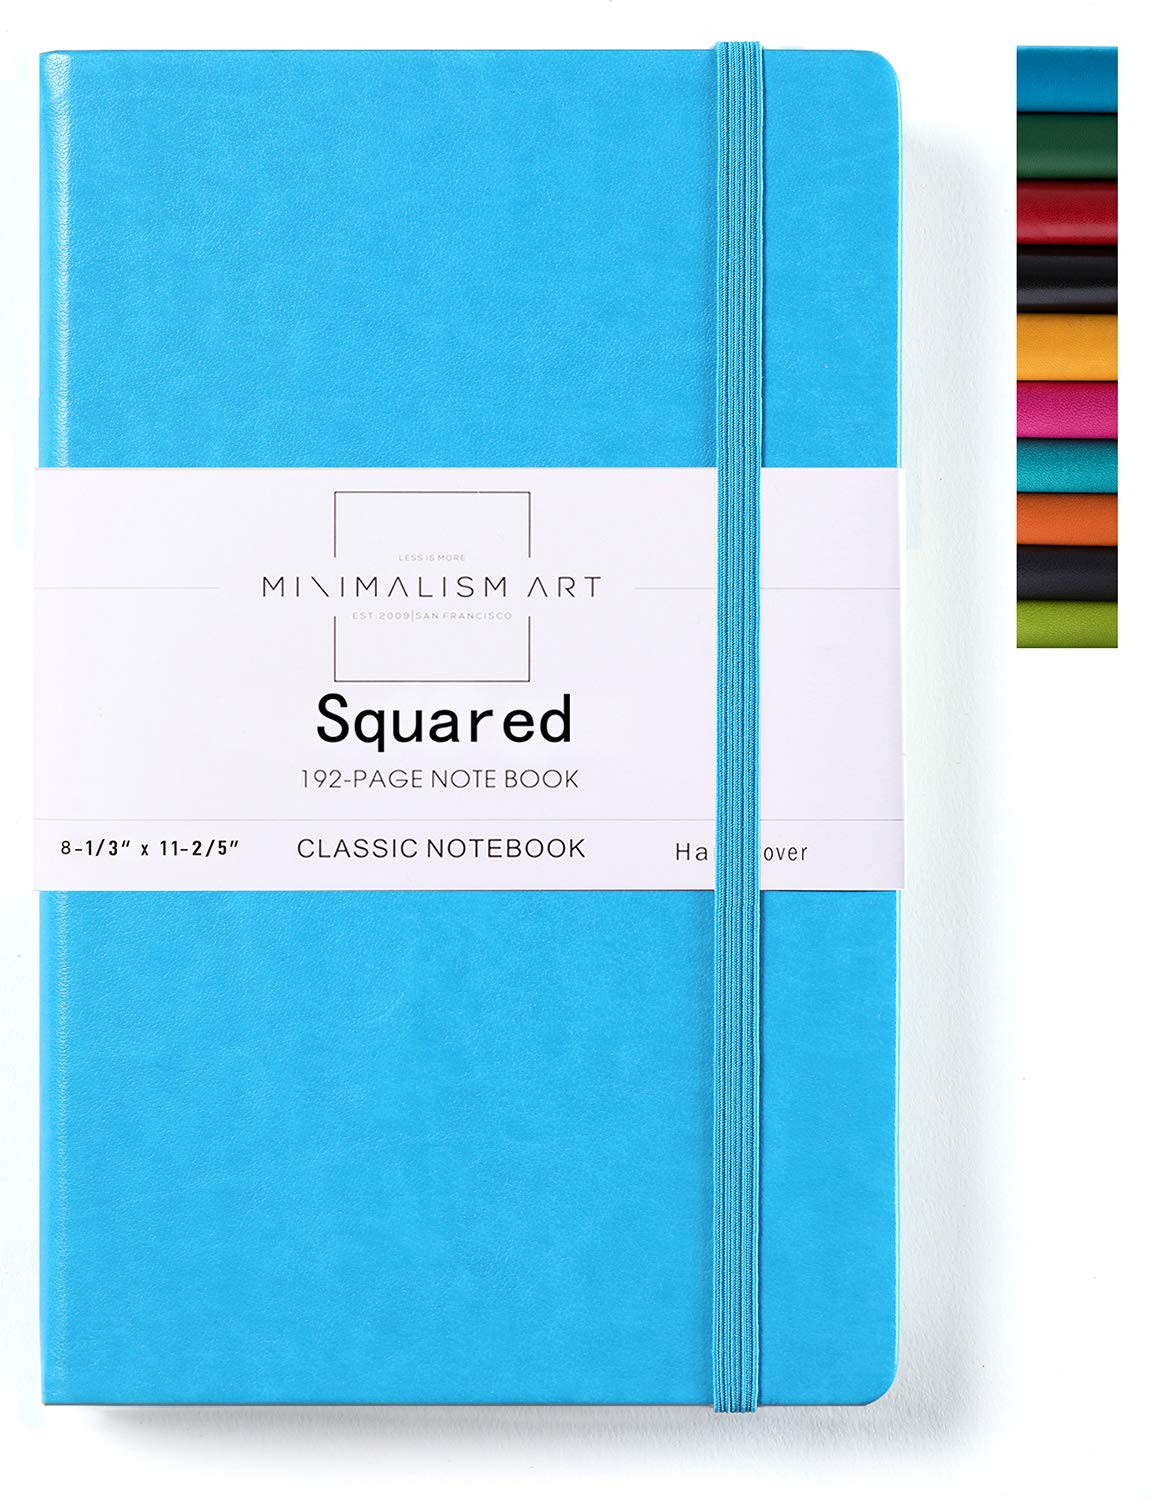 Minimalism Art, Classic Notebook Journal, A4 Size 8.3 X 11.4 inches, Blue, Squared Grid Page, 192 Pages, Hard Cover, Fine PU Leather, Inner Pocket, Quality Paper-100gsm, Designed in San Francisco